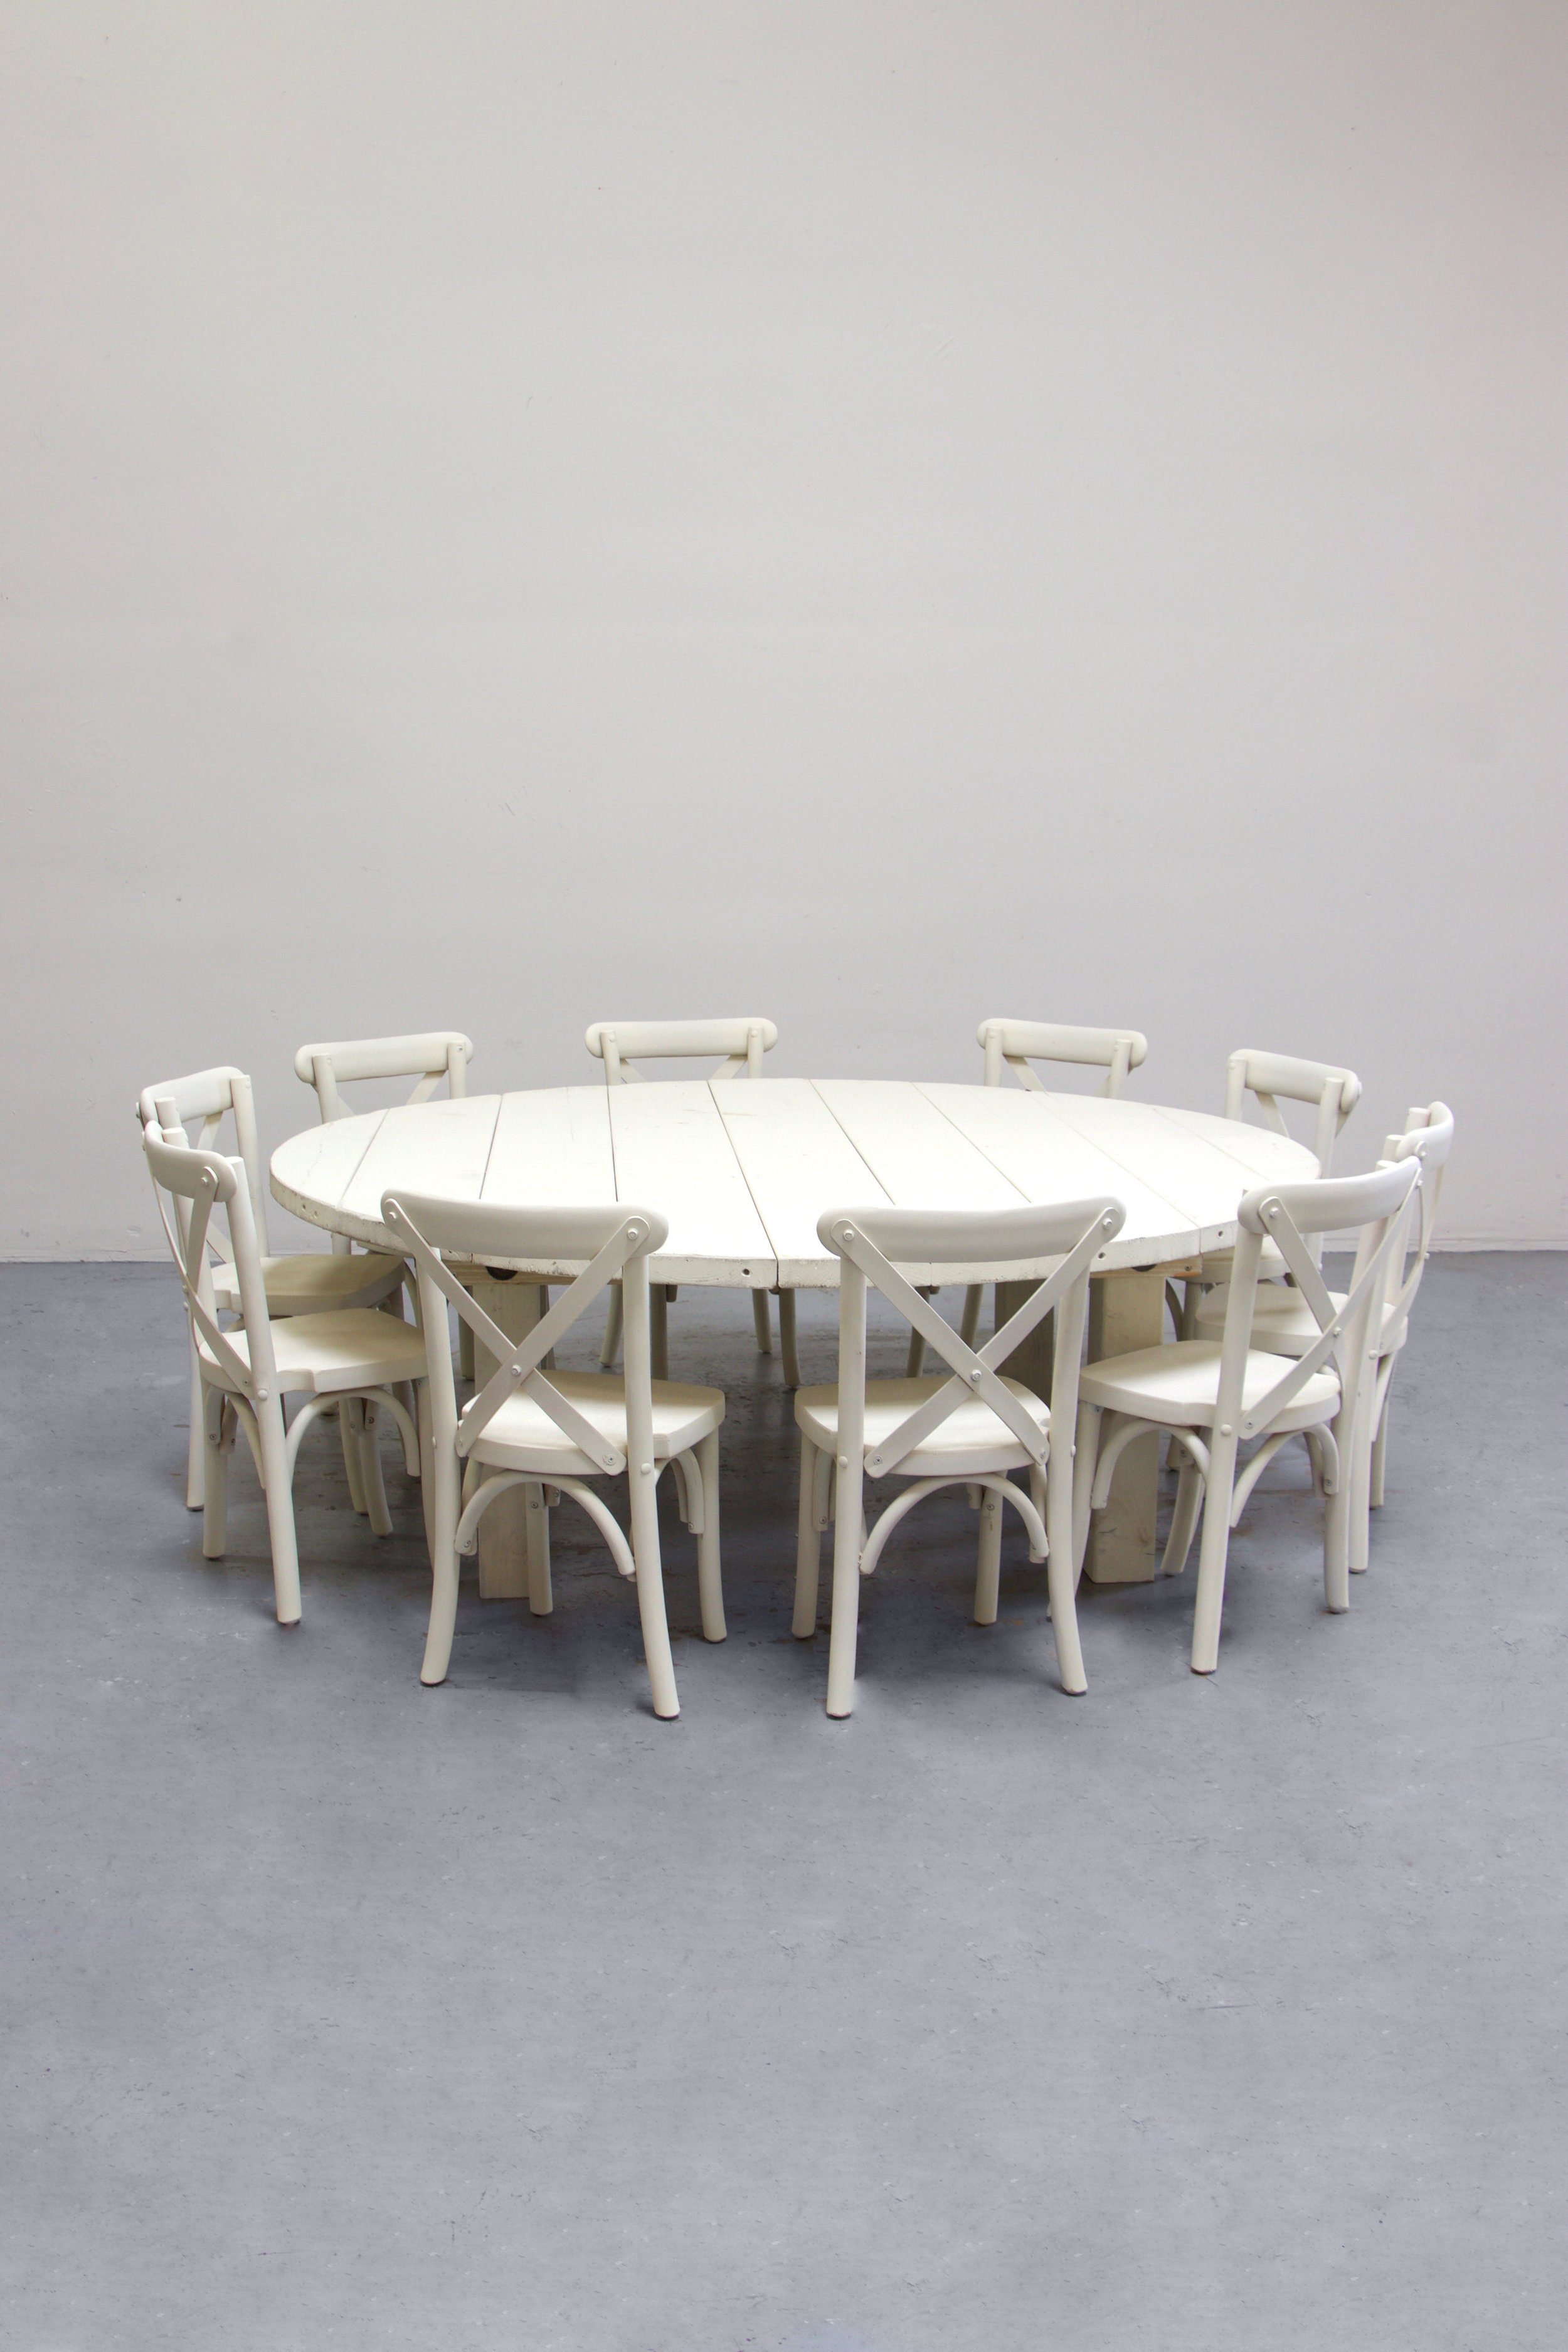 $135 1 Kids Vintage White Round Farm Table w/ 10 Cross-Back Chairs